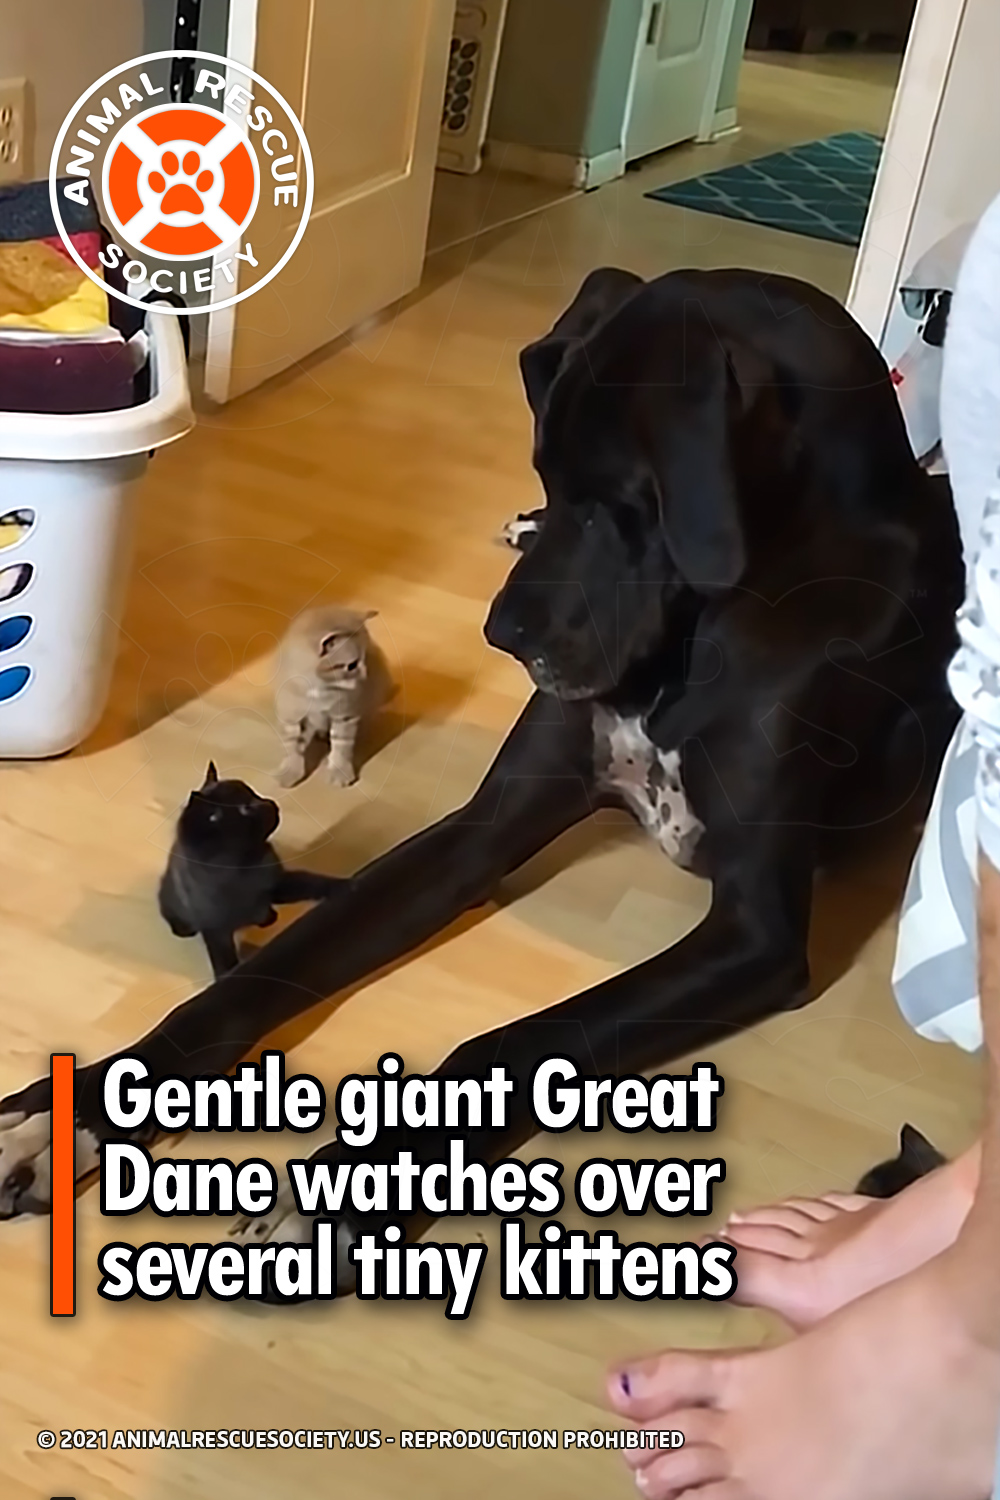 Gentle giant Great Dane watches over several tiny kittens